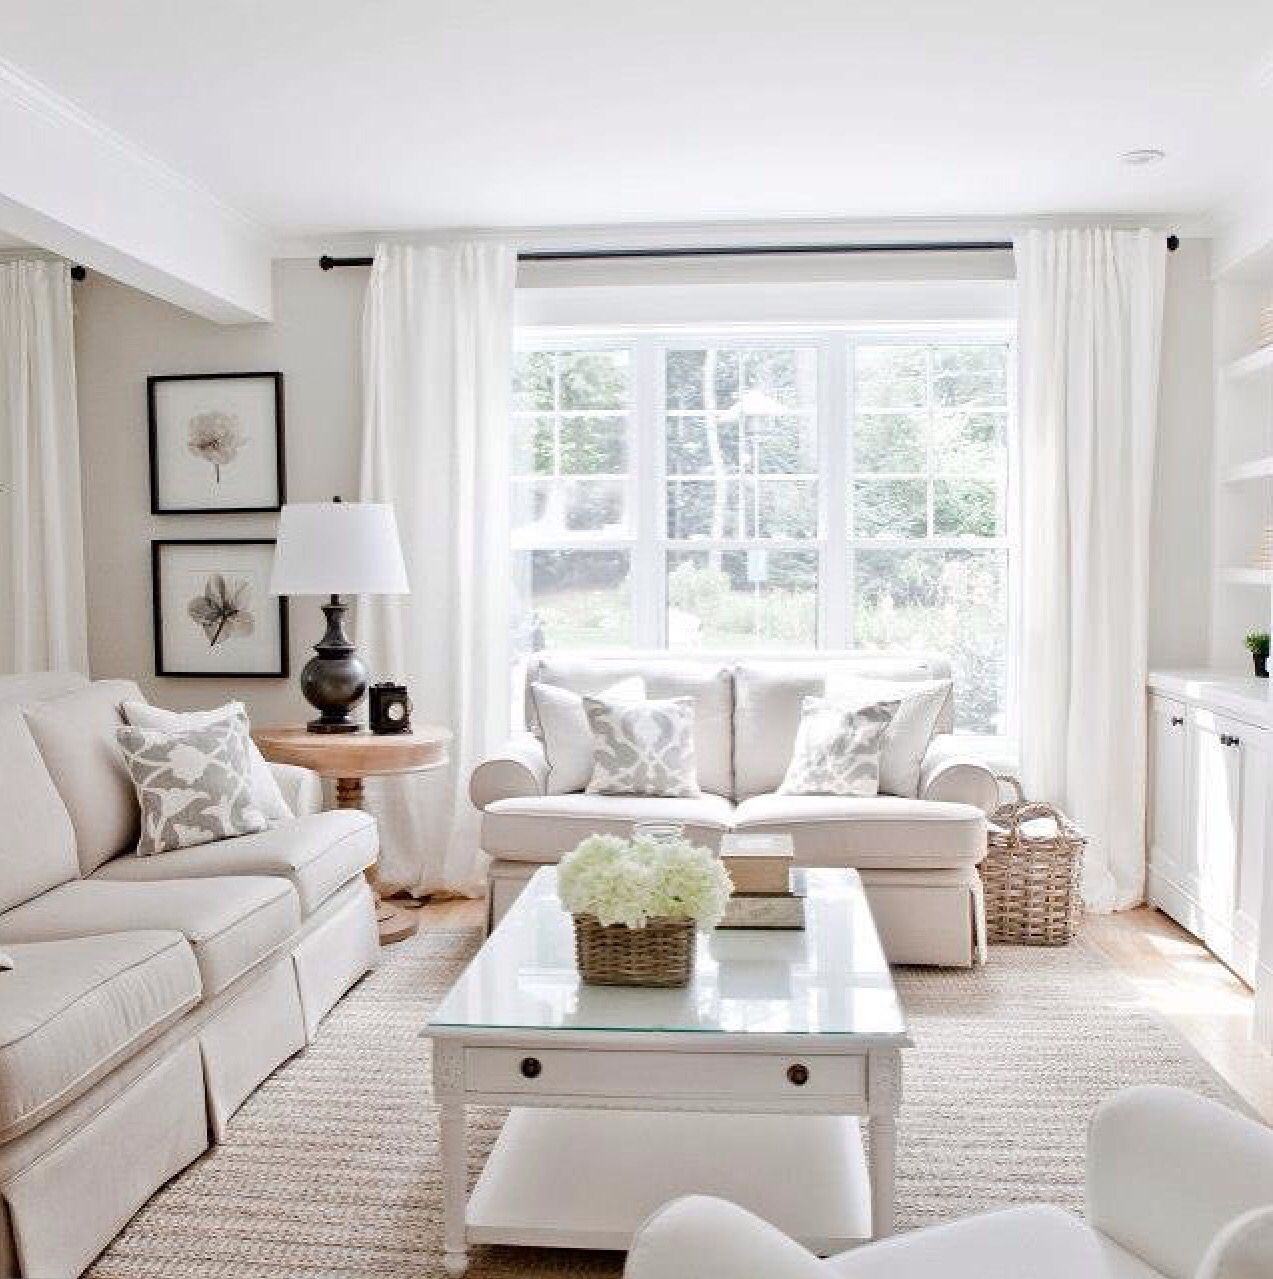 Transitional design, modern furnishings white Interior, home decor ...